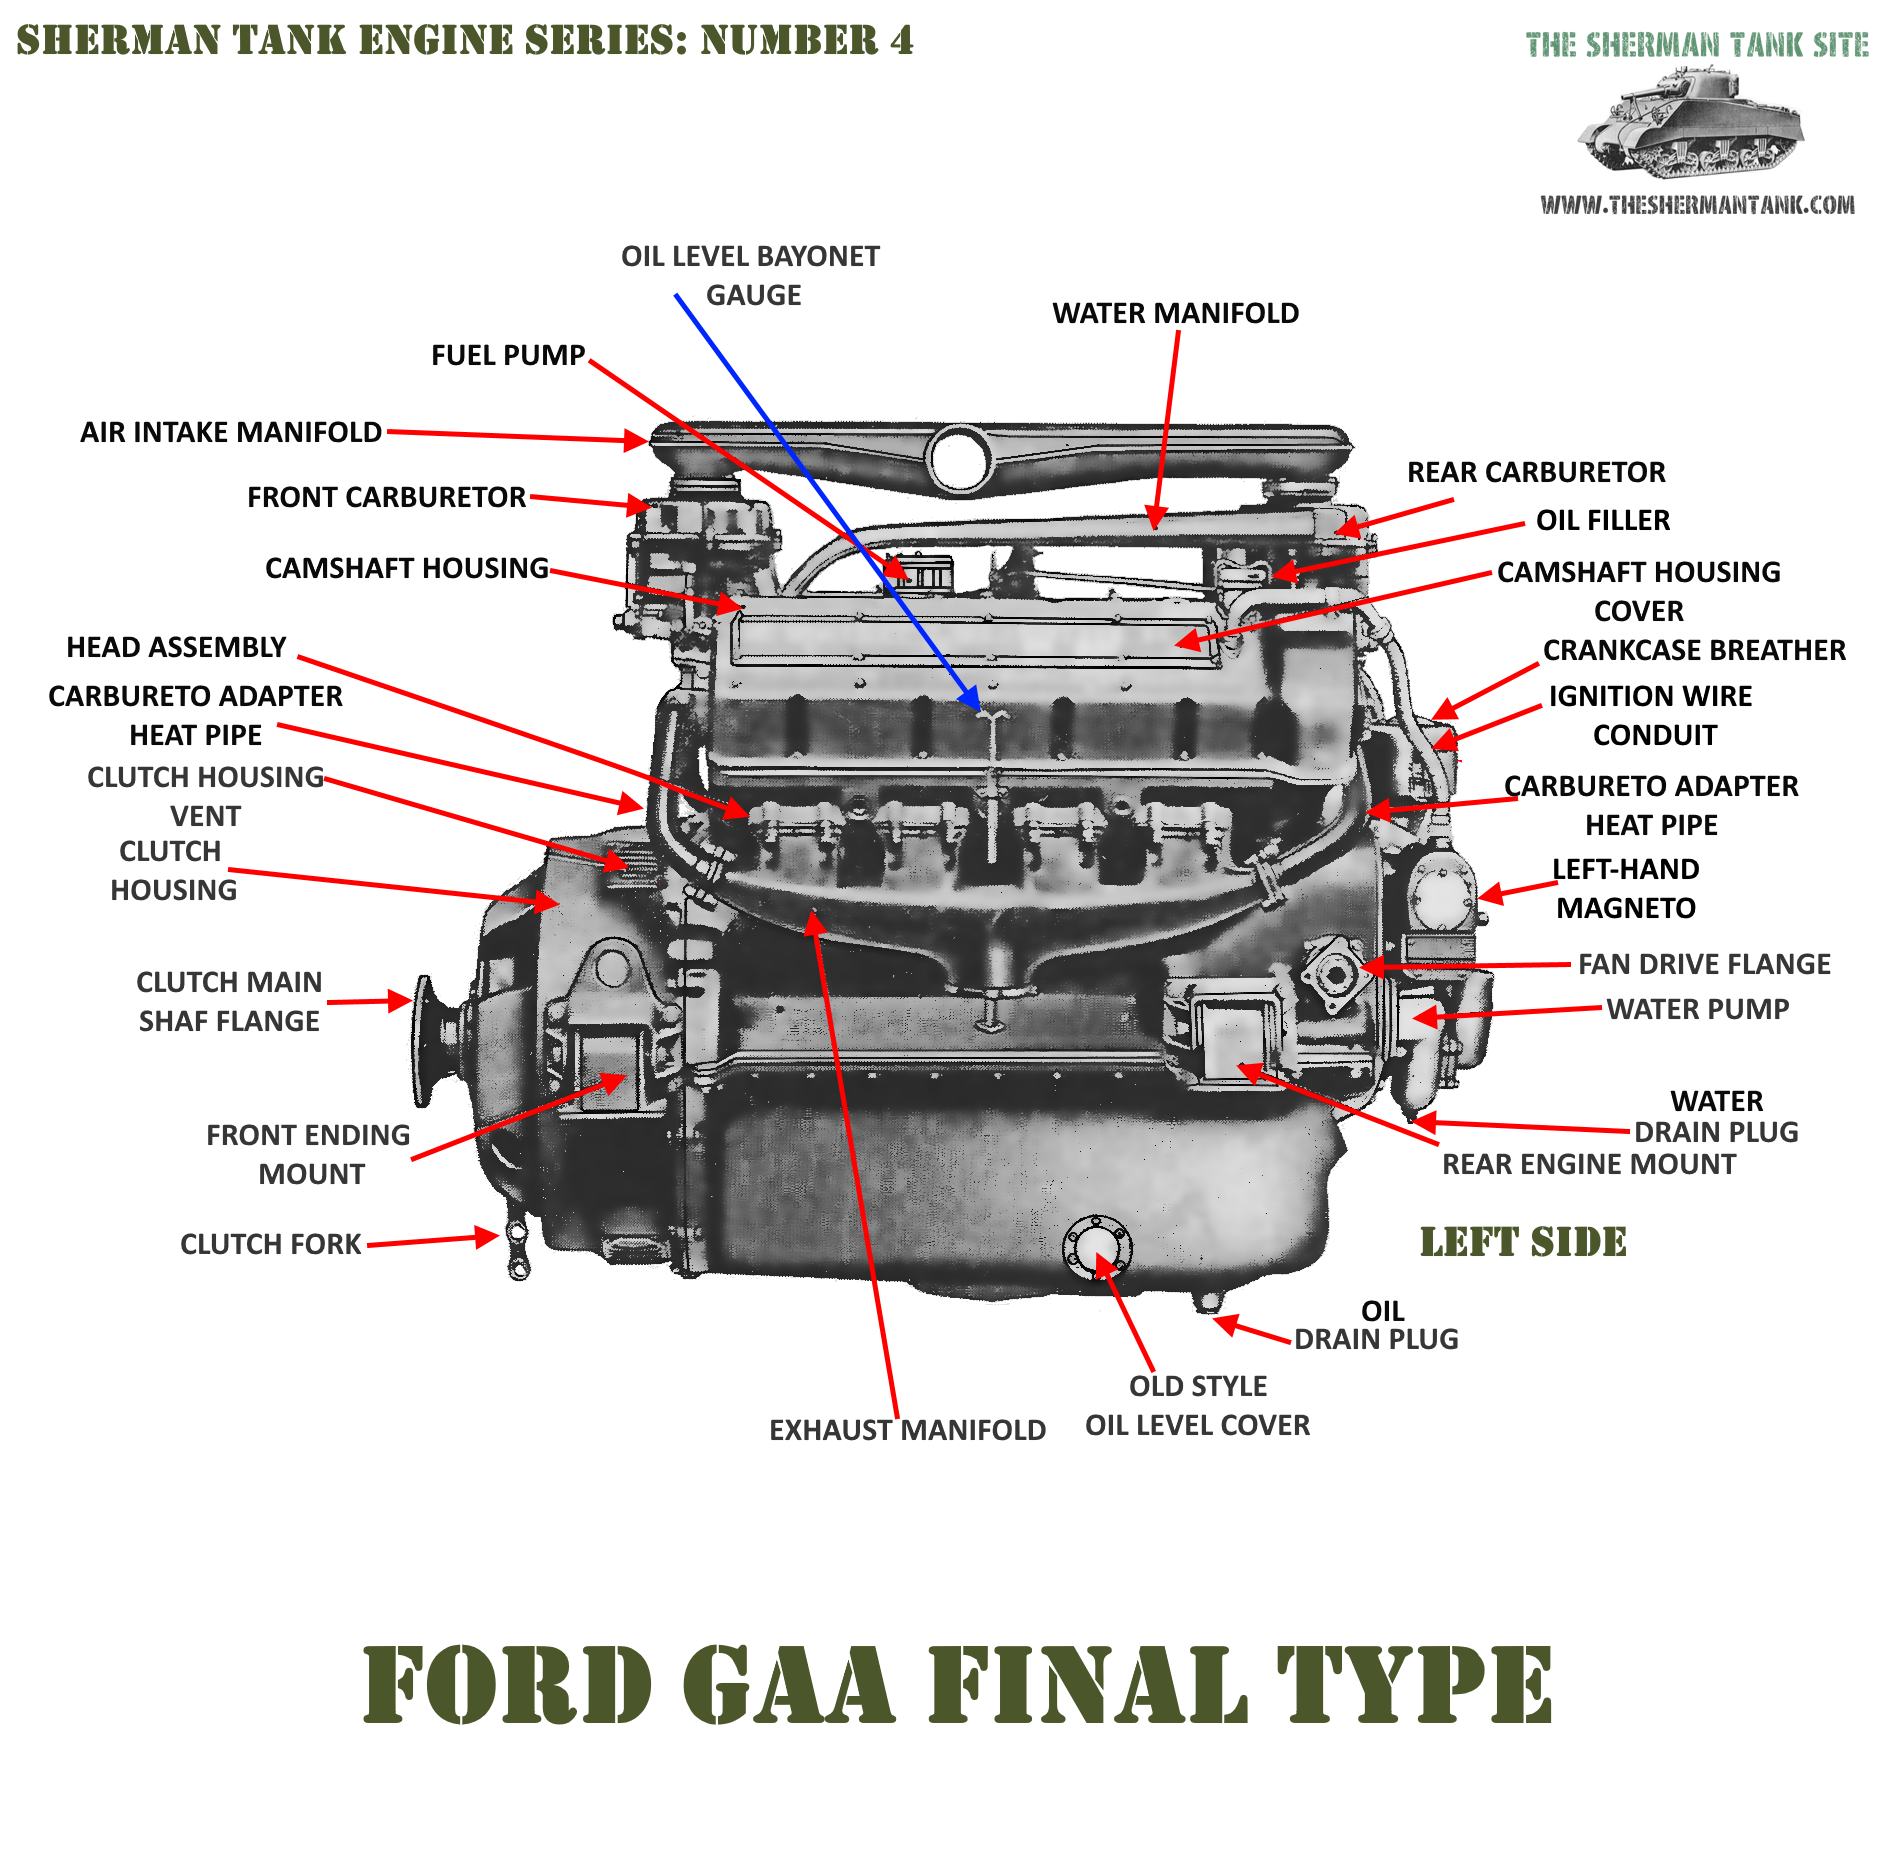 the ford gaa data page more info and technical drawings and manual Tiger Tank Diagram the gaa is really a much better motor for a tank in the shermans weight range than the r975 the tanks using this motor were not lend leased to the other